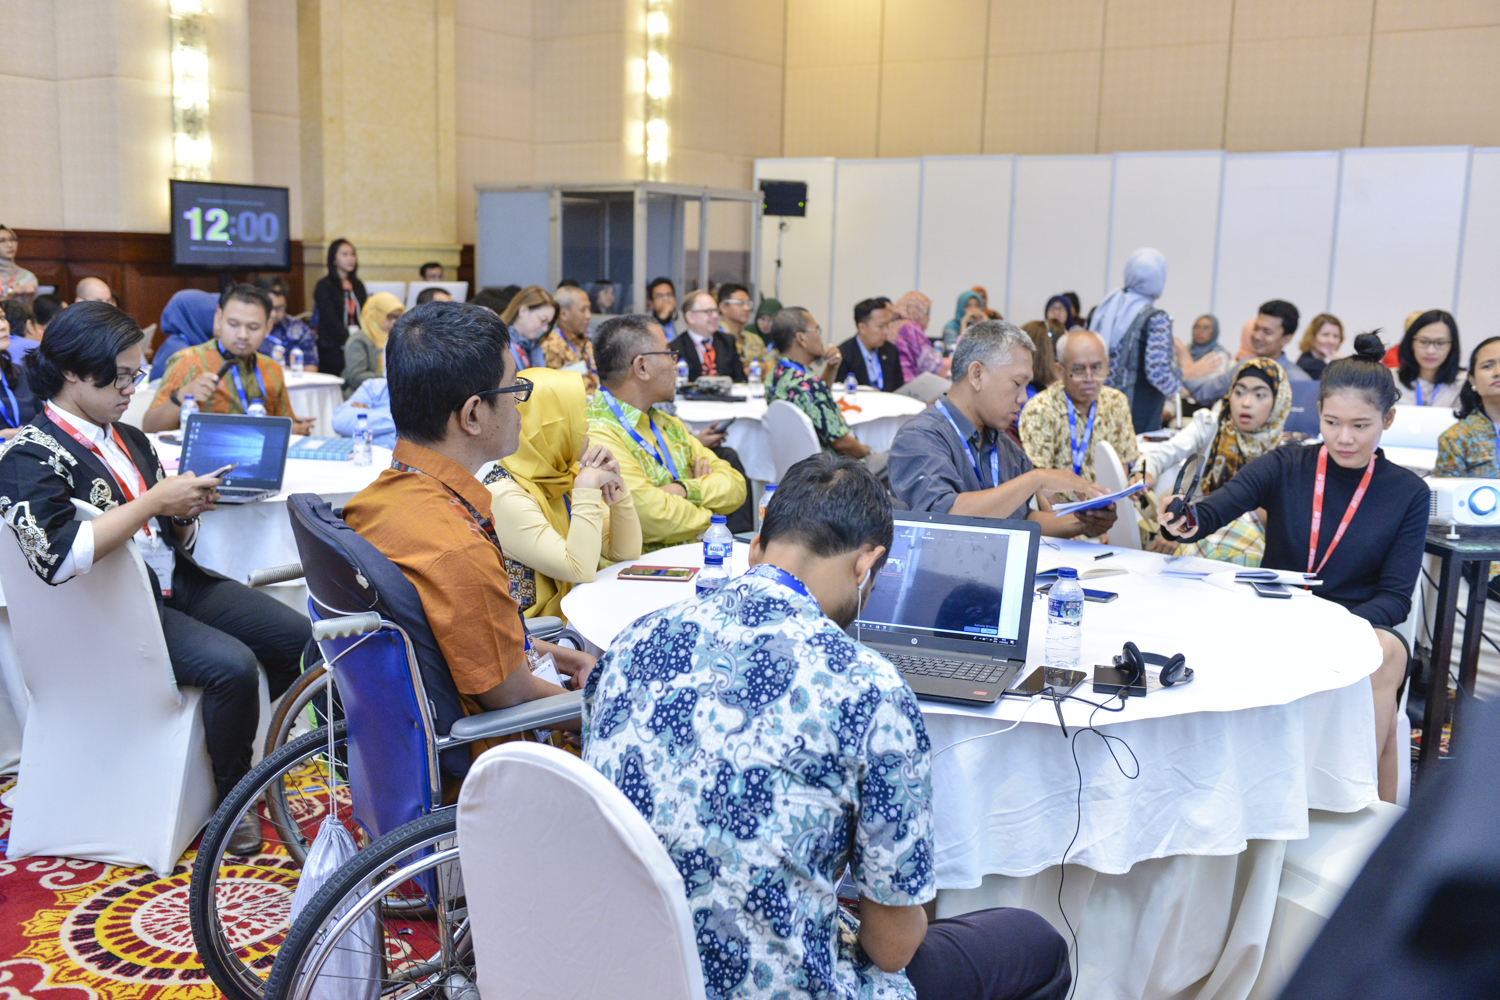 Special Session II: Disability, Policy and Services: Regional Disparities in the Indonesian and Australian Experience